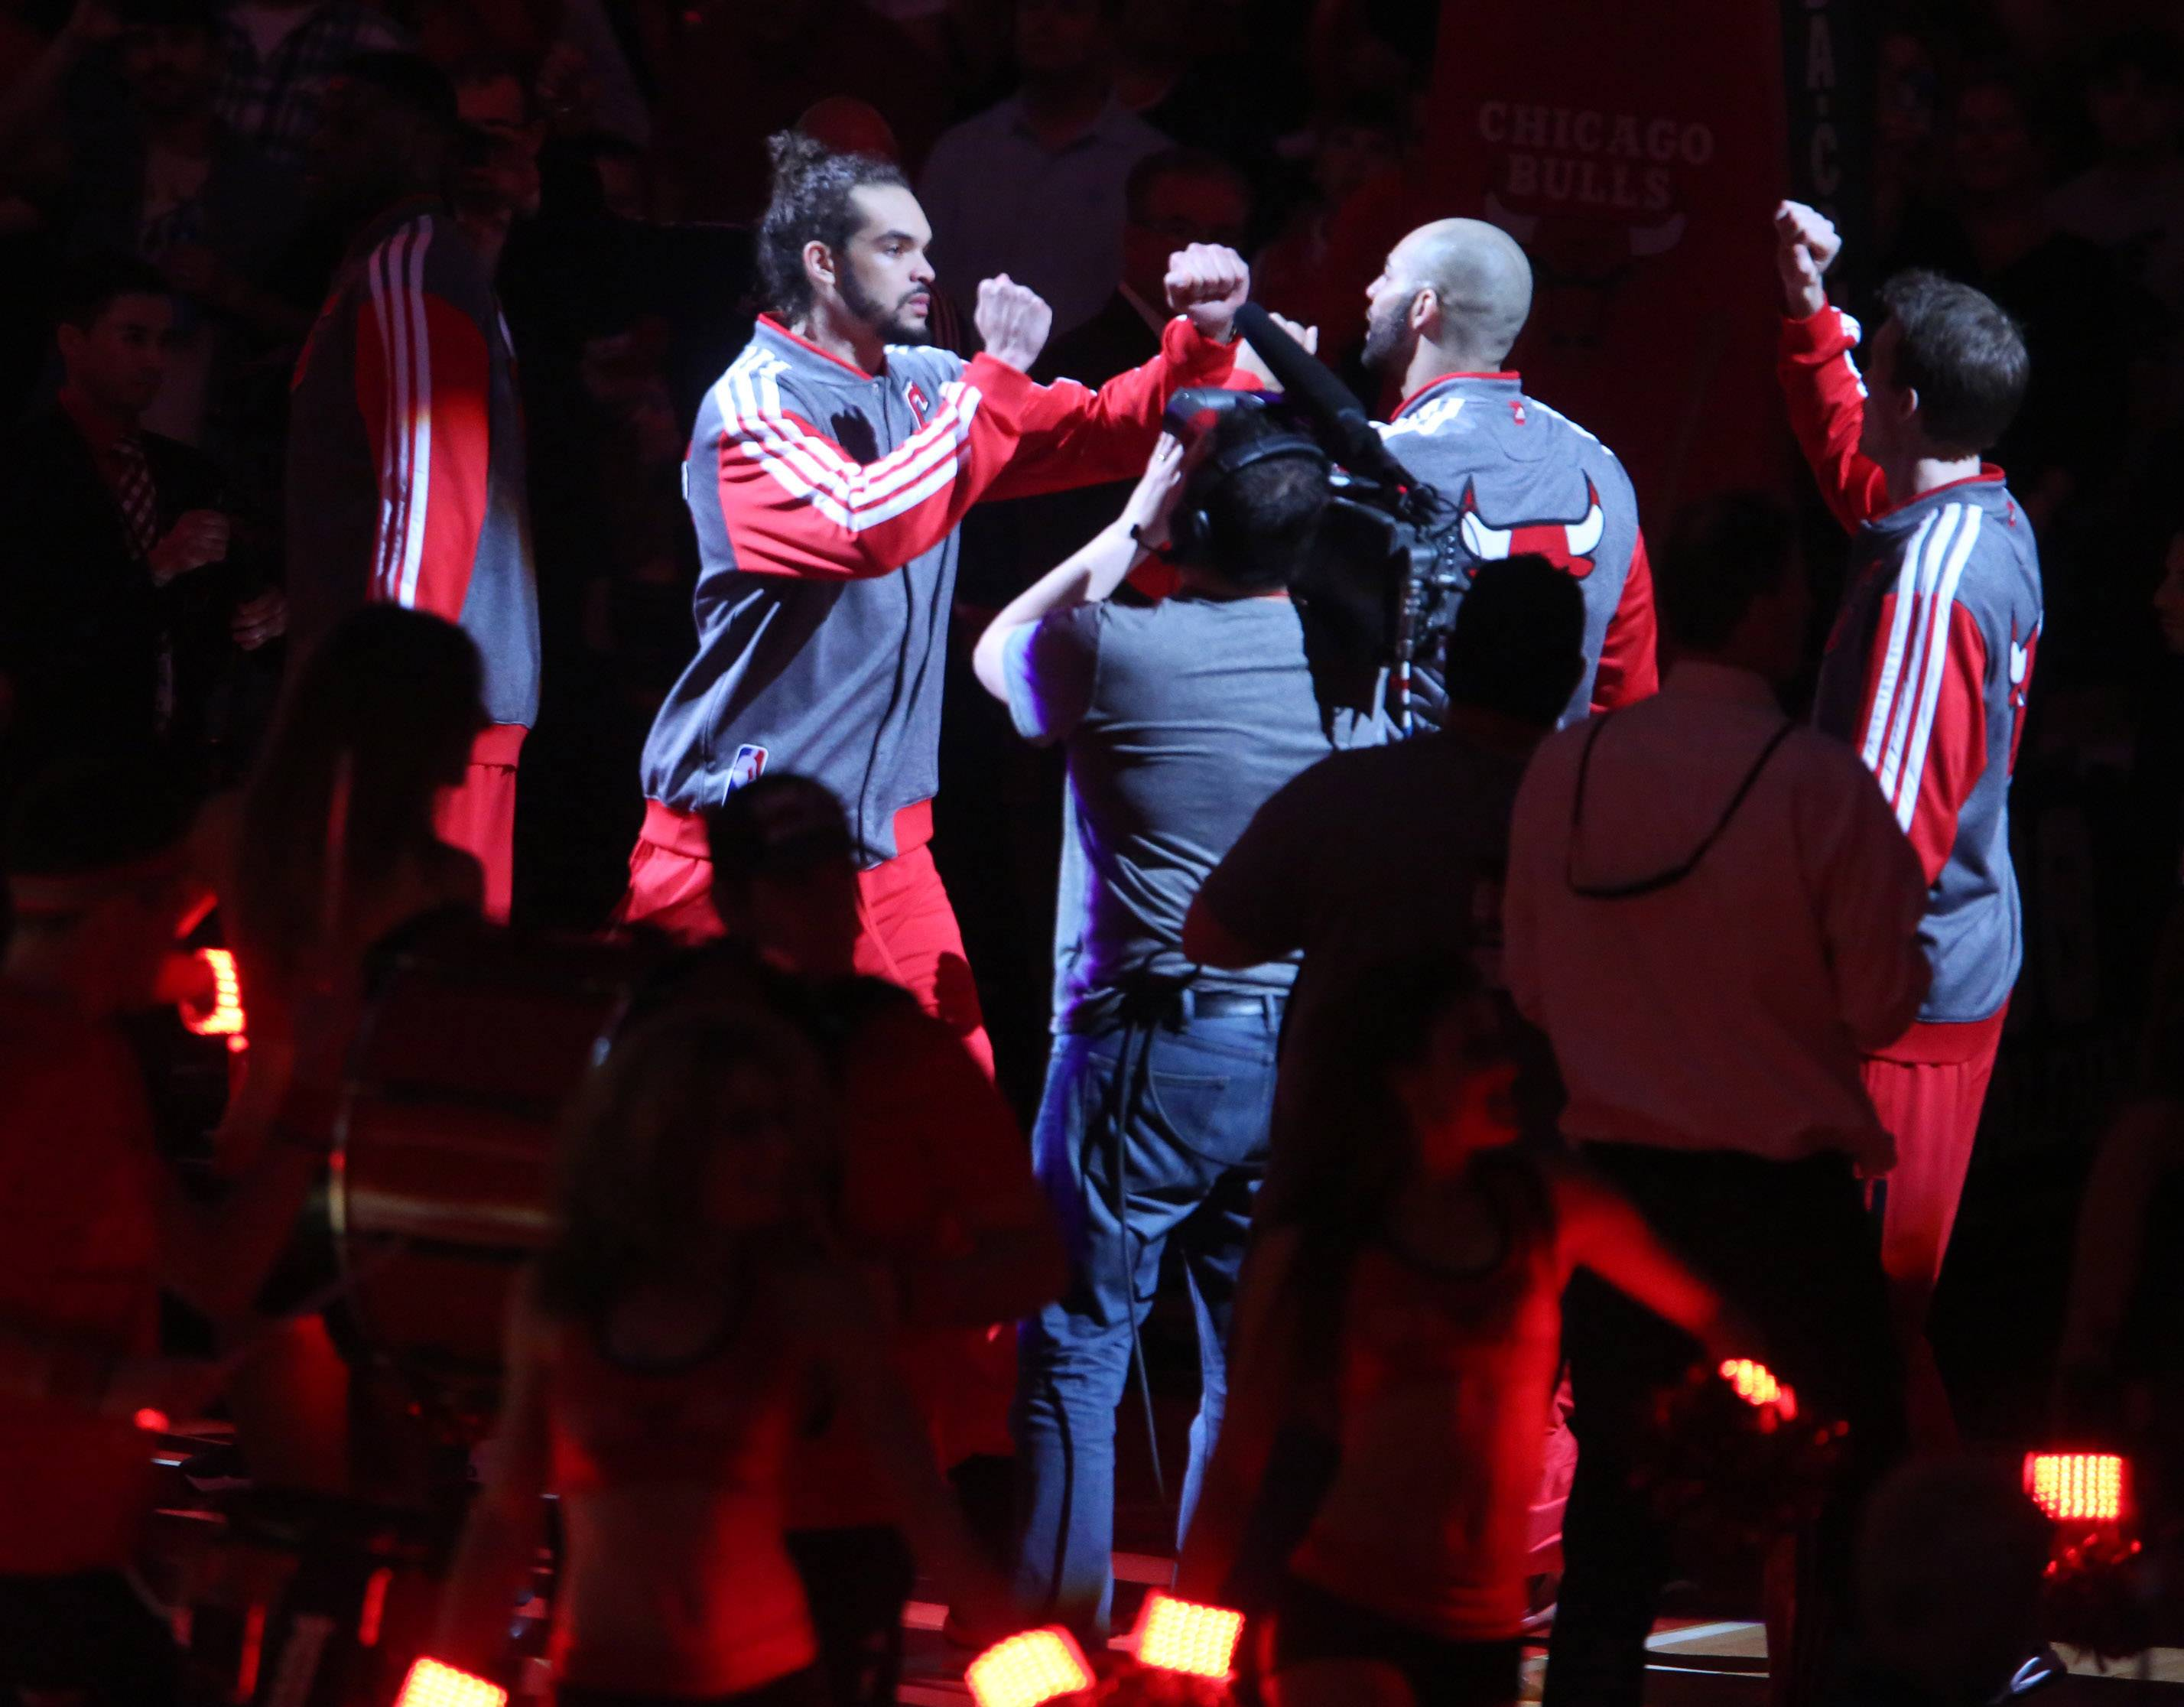 Chicago Bulls center Joakim Noah takes the floor to play the Washington Wizards in game 1 of an Eastern Conference first-round NBA playoff series.